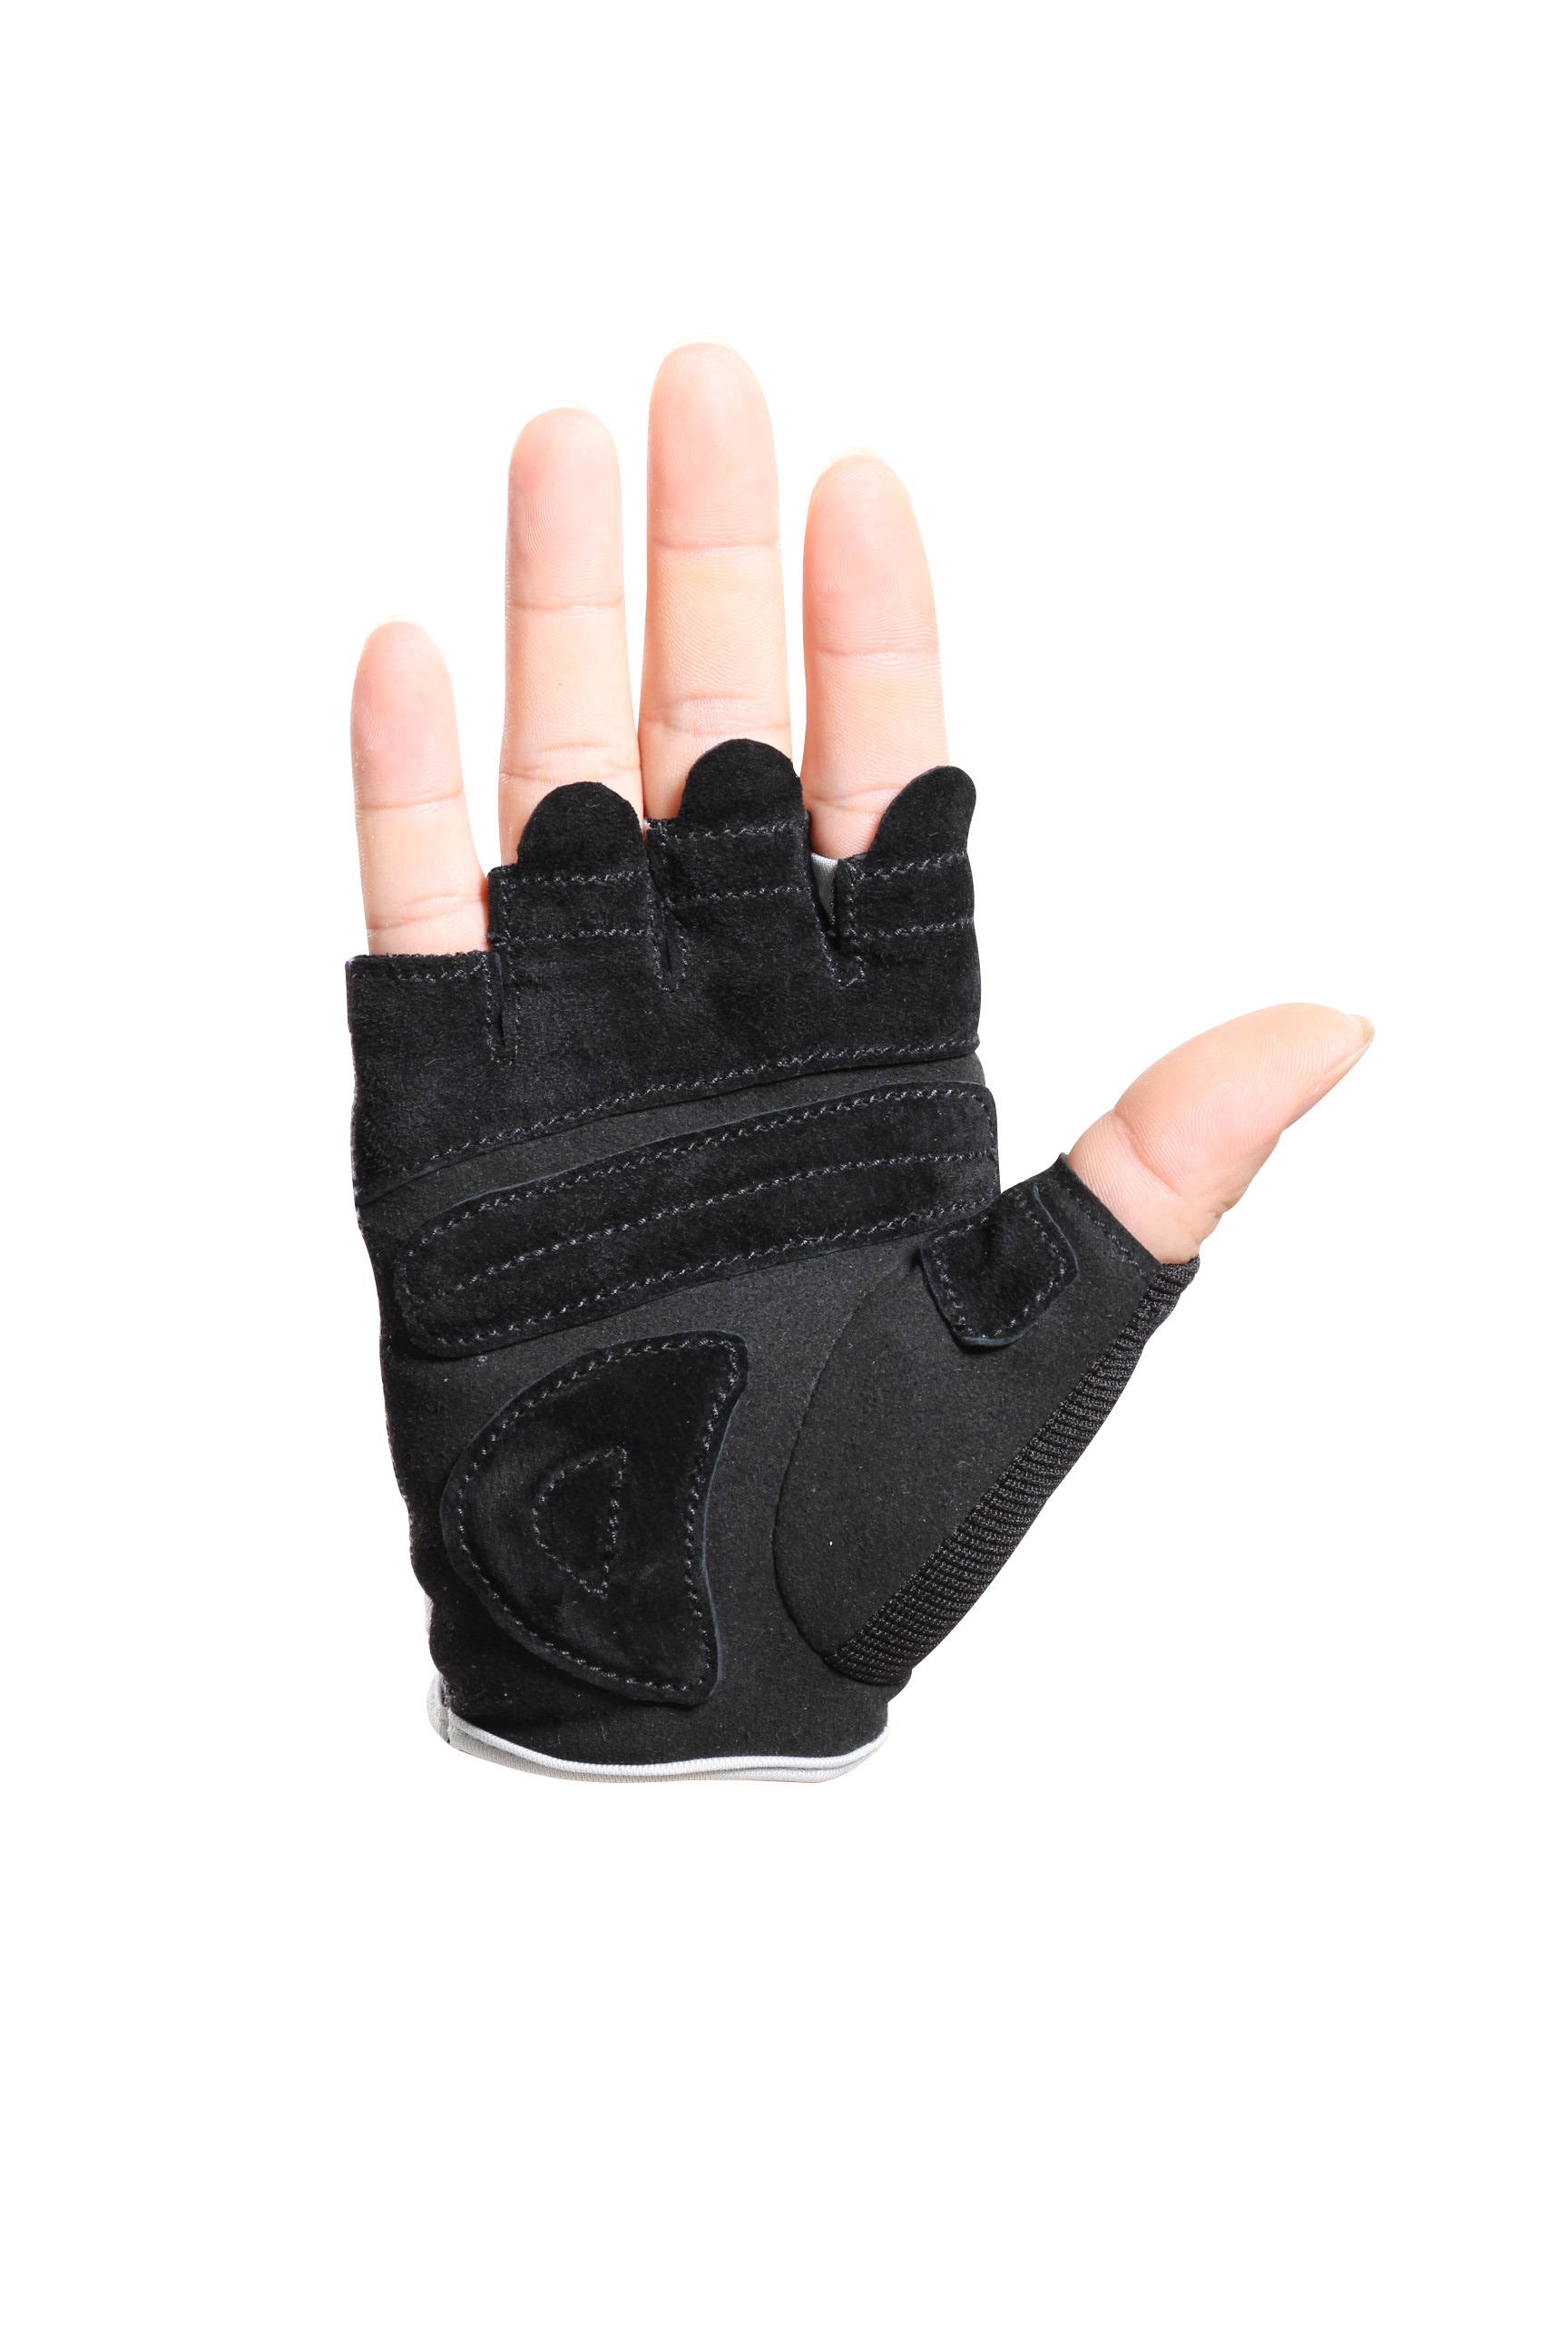 Fashion Printing Weightlifting gloves